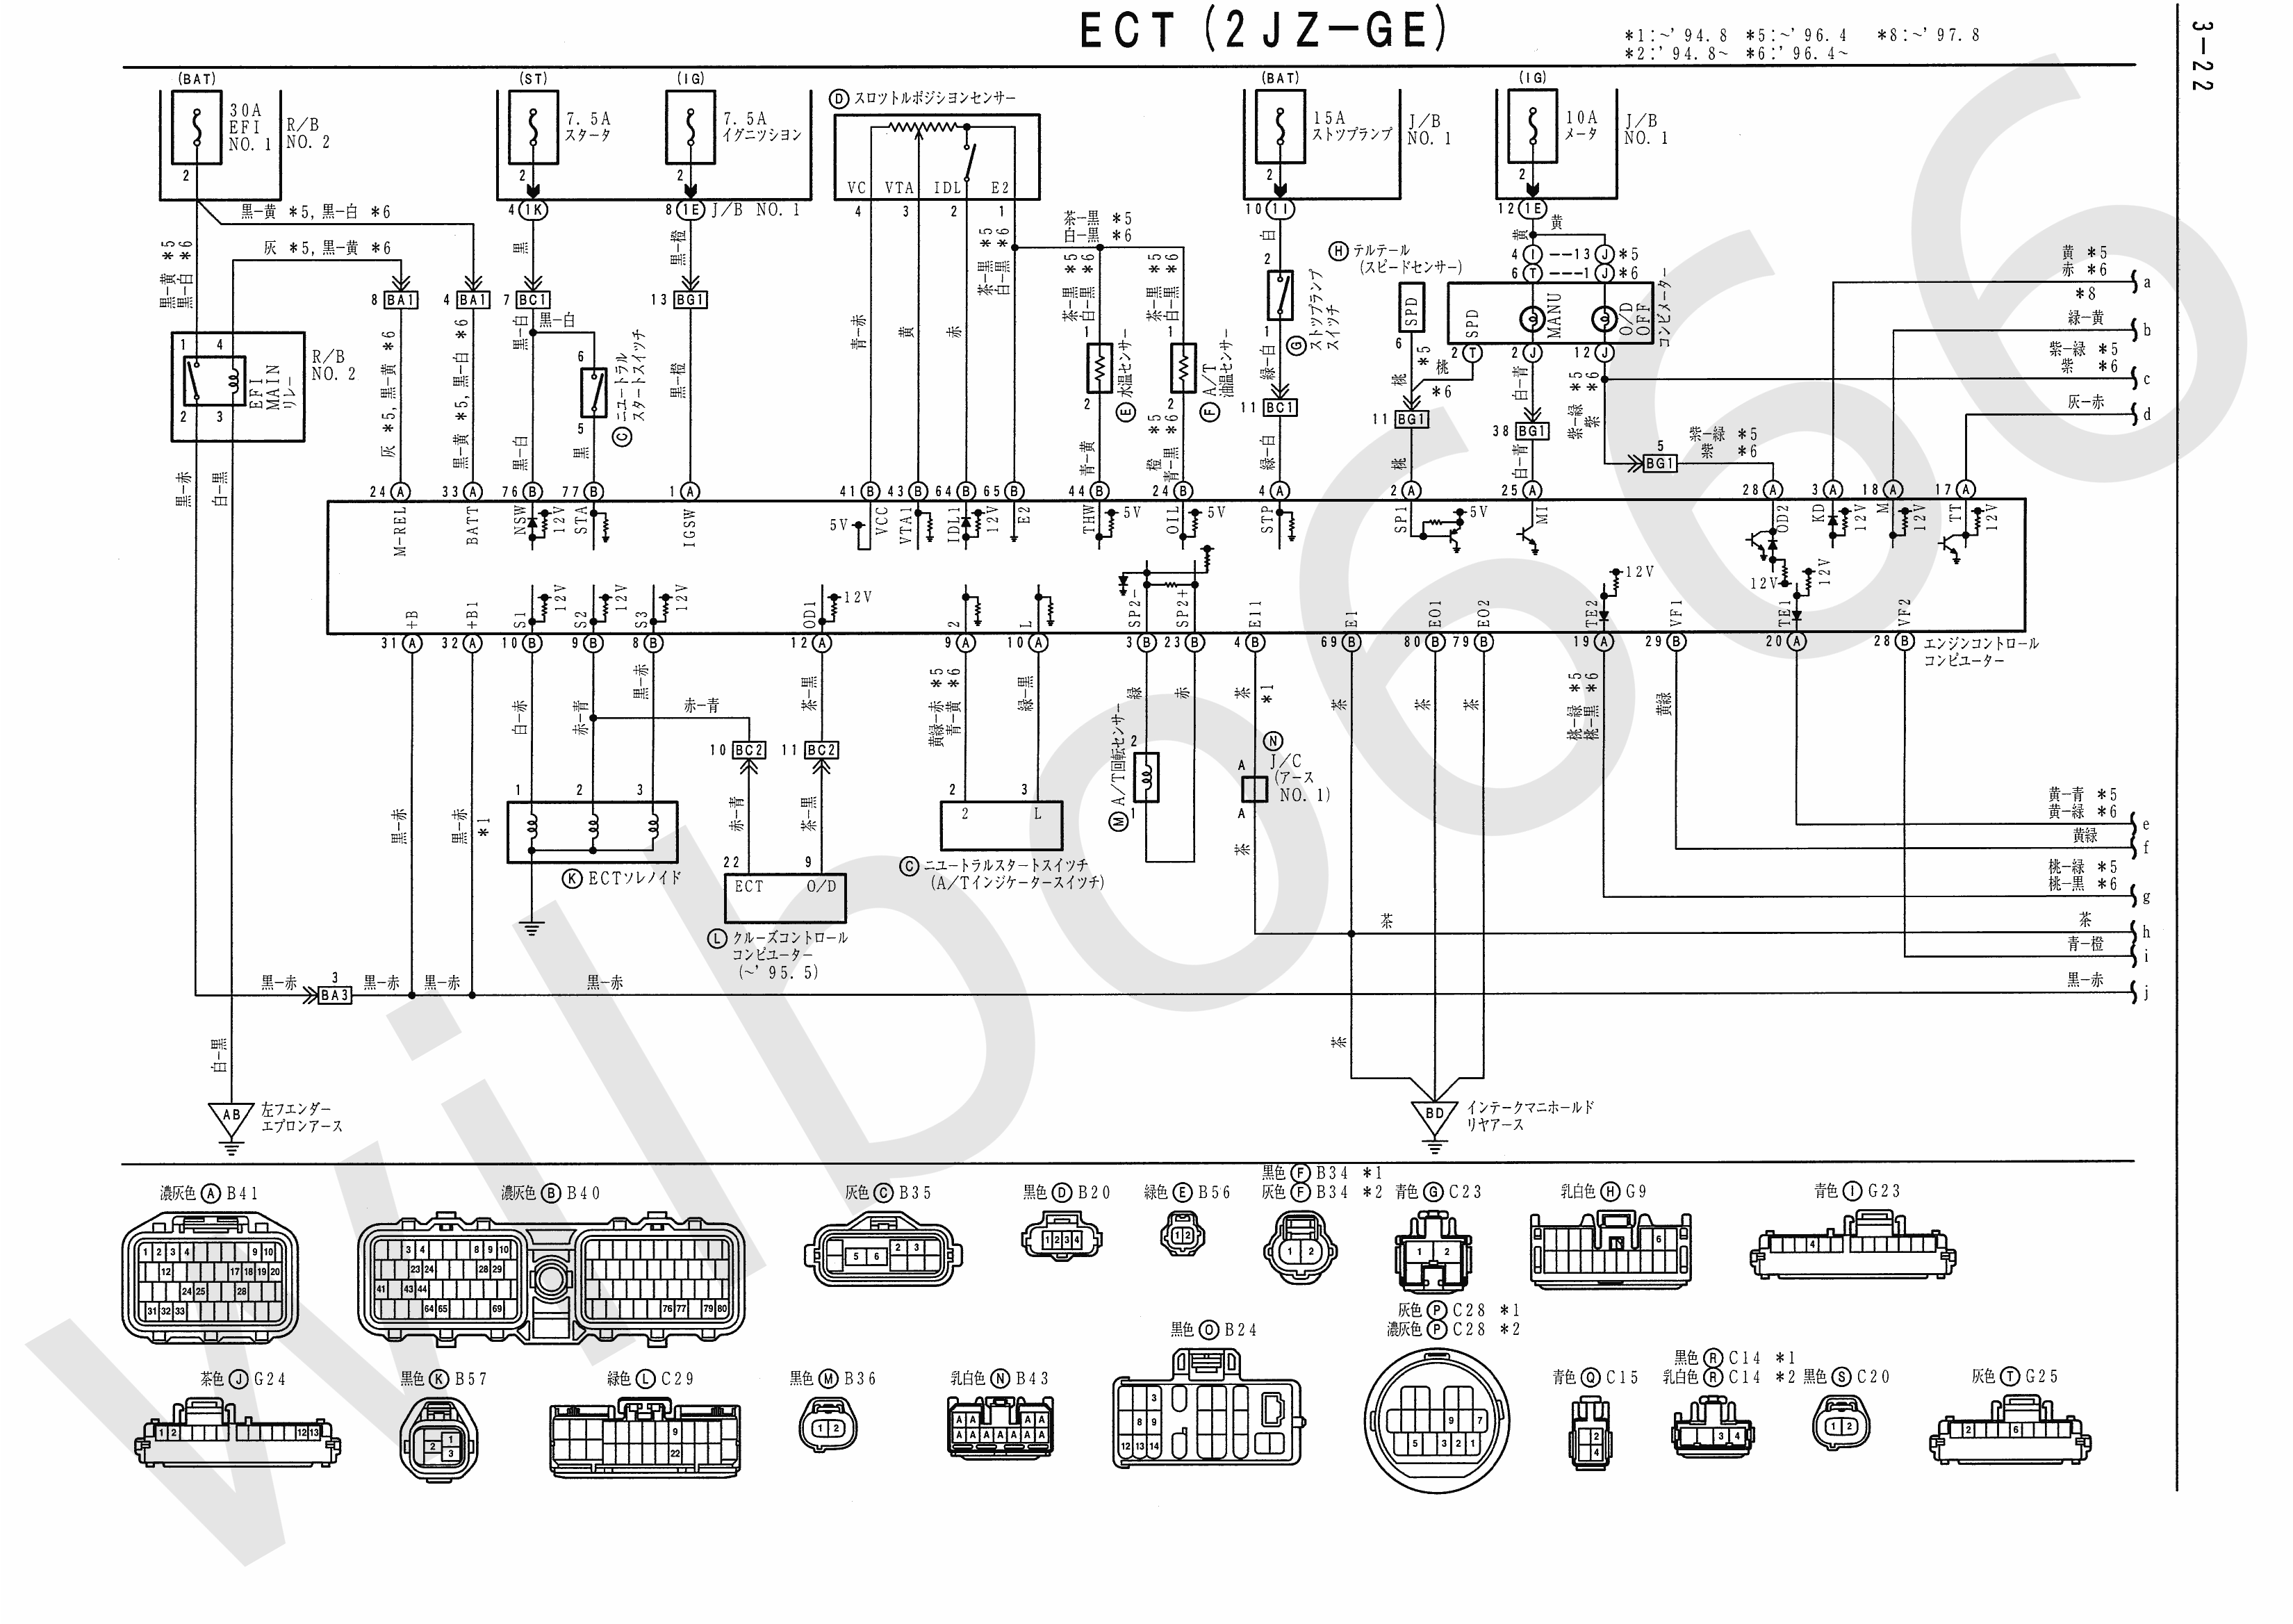 JZA80 Electrical Wiring Diagram 6742505 3 22 wilbo666 2jz ge jza80 supra engine wiring toyota ecu diagram at soozxer.org